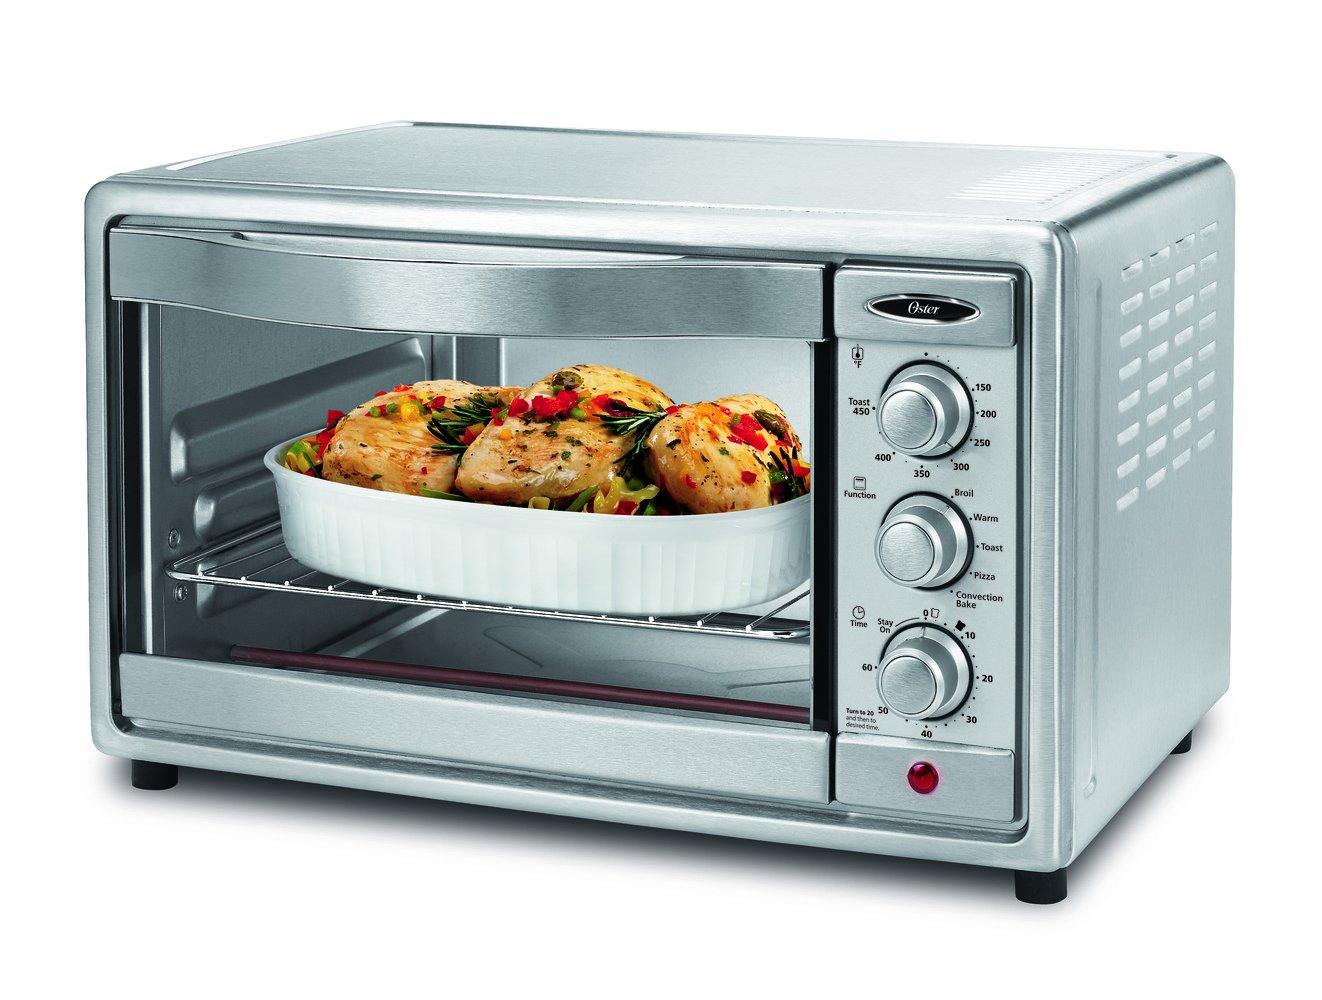 Oster Convection Toaster Oven, 6 Slice, Brushed Stainless Steel (TSSTTVRB04) by Oster